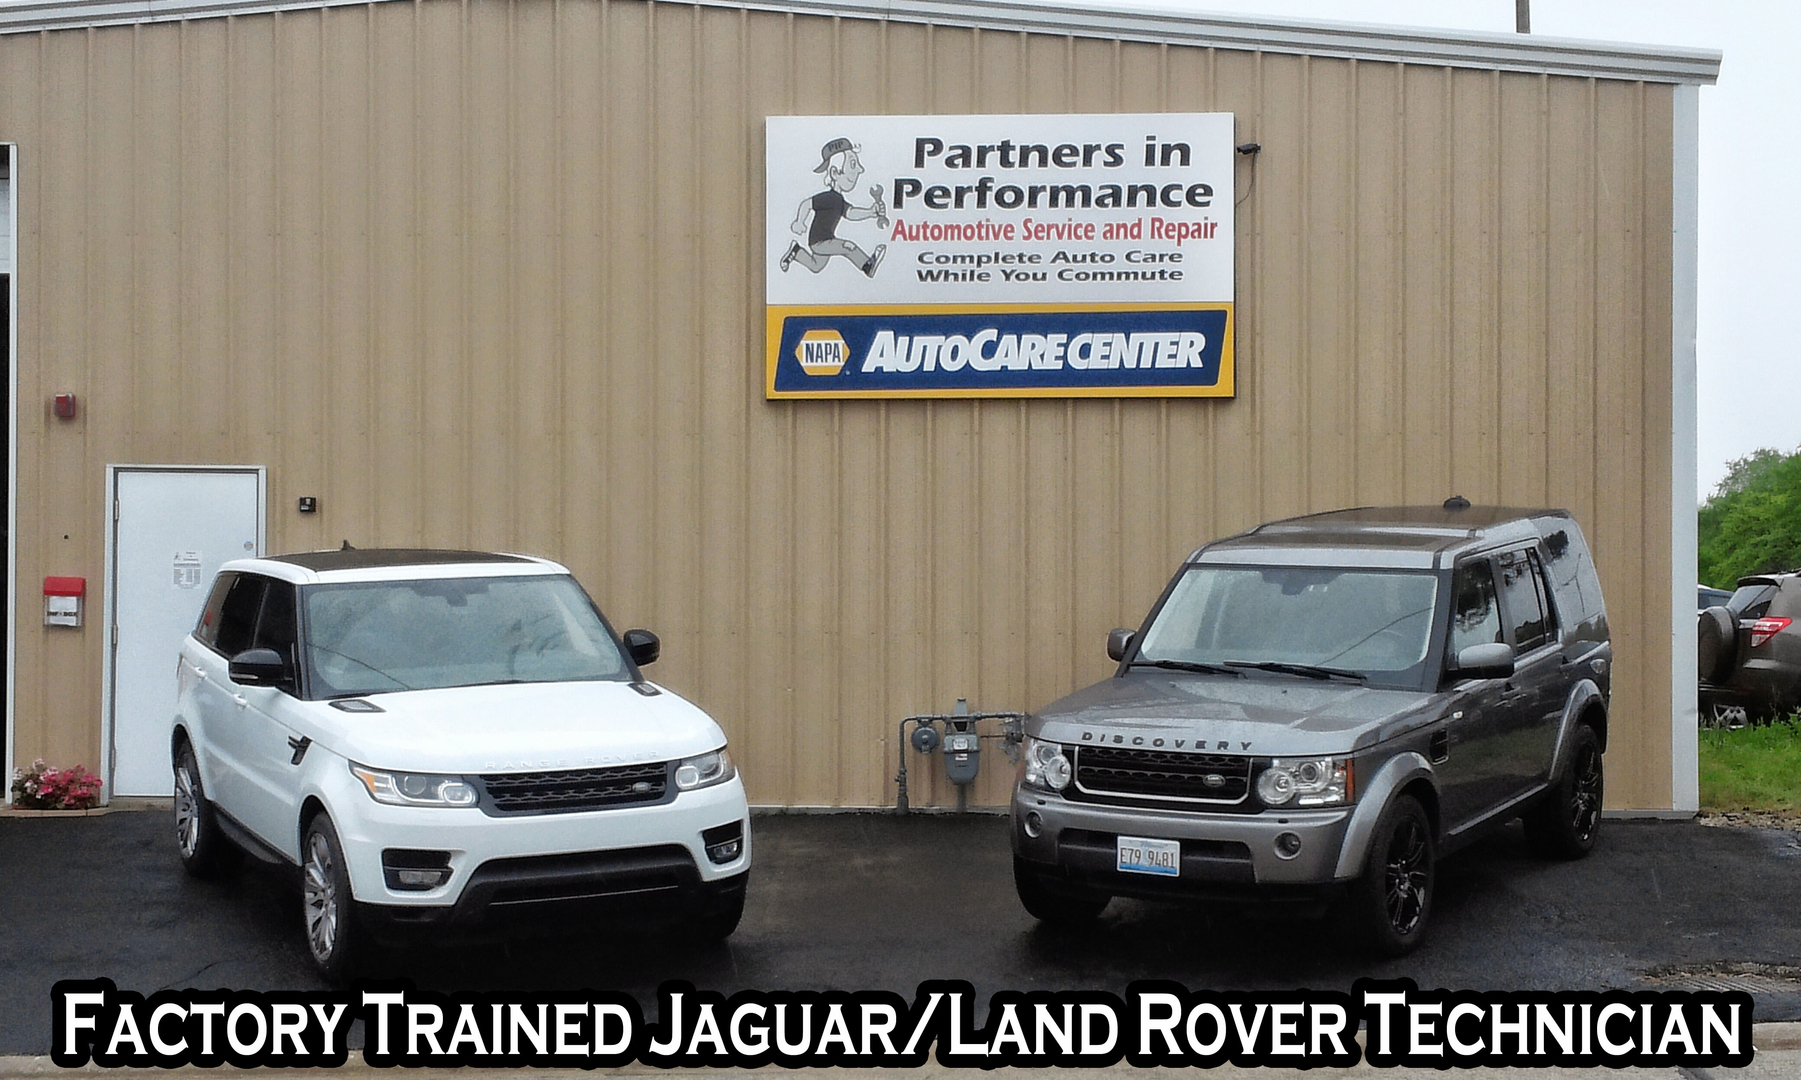 Partners In Performance Automotive Service and Repair